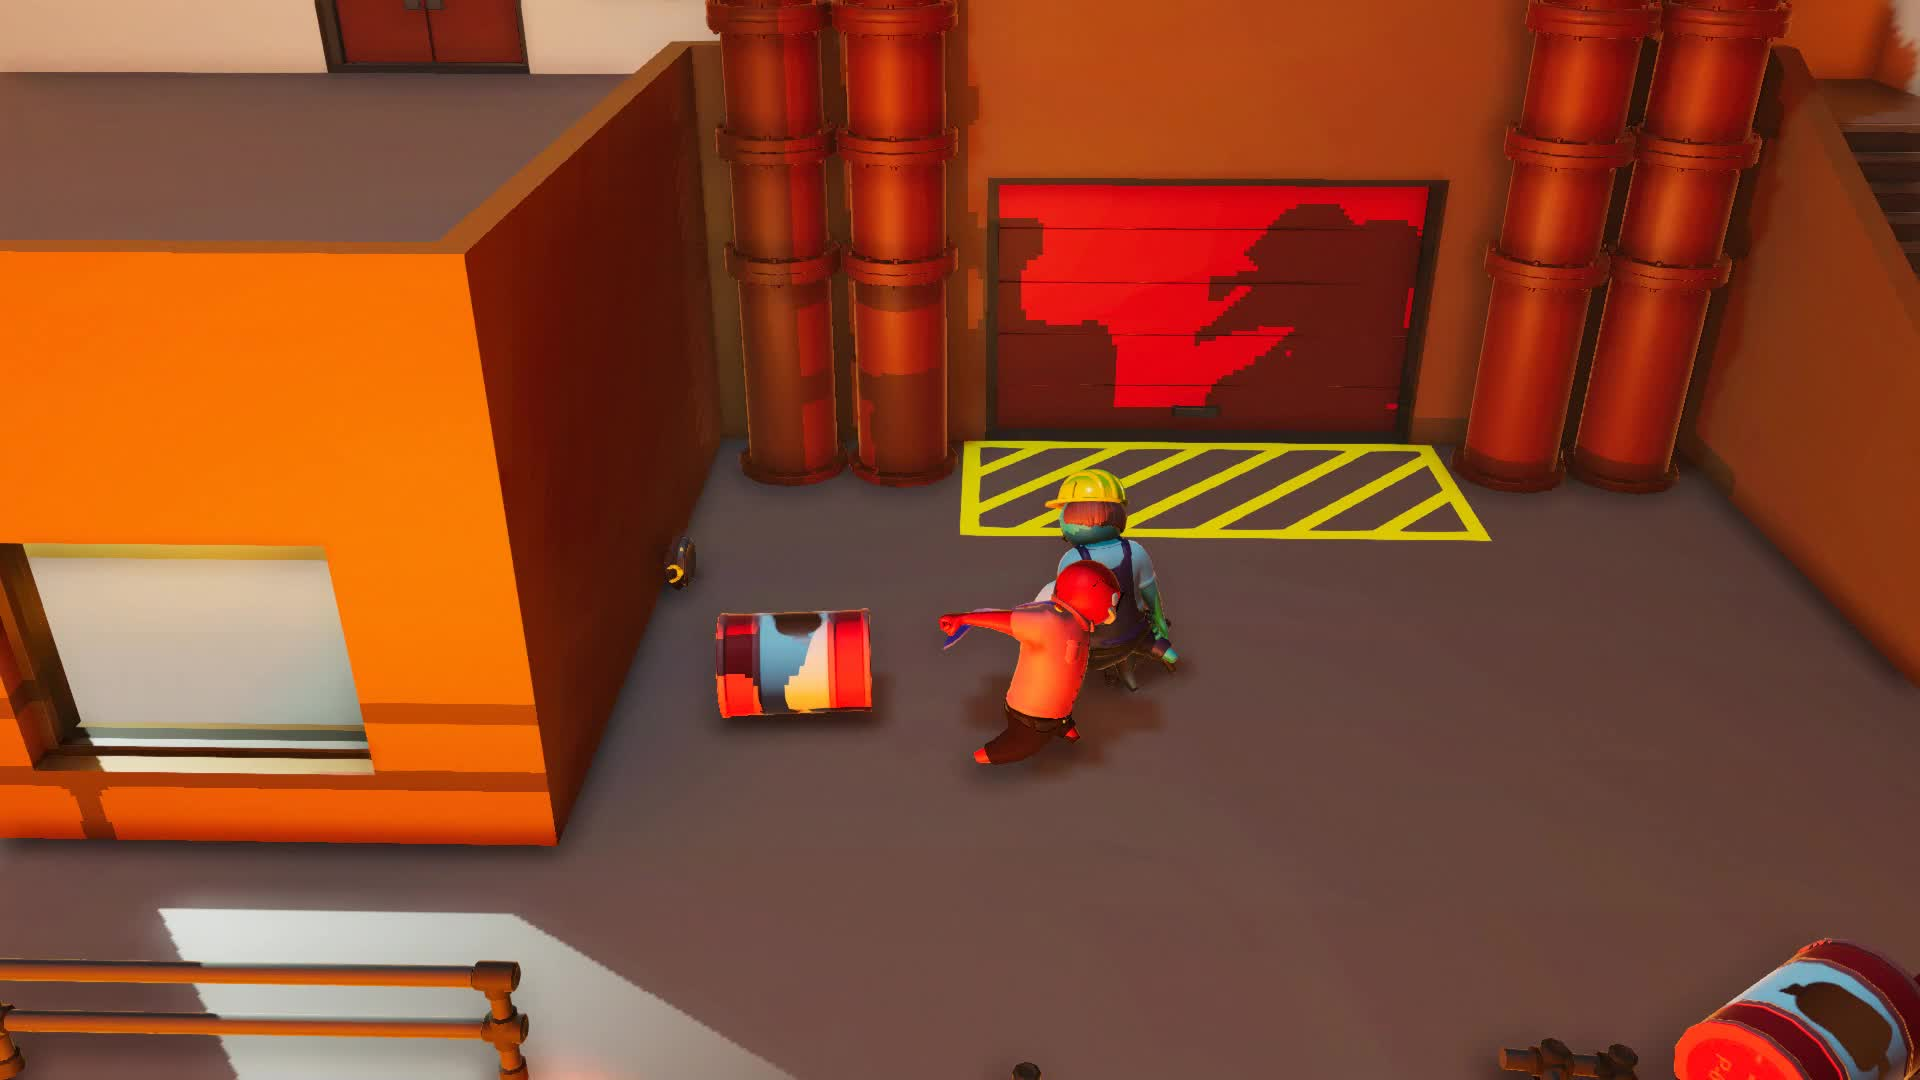 gangbeasts, vlc-record-2018-02-17-20h50m23s-Gang Beasts 02.13.2018 - 01.54.52.05.mp4- GIFs